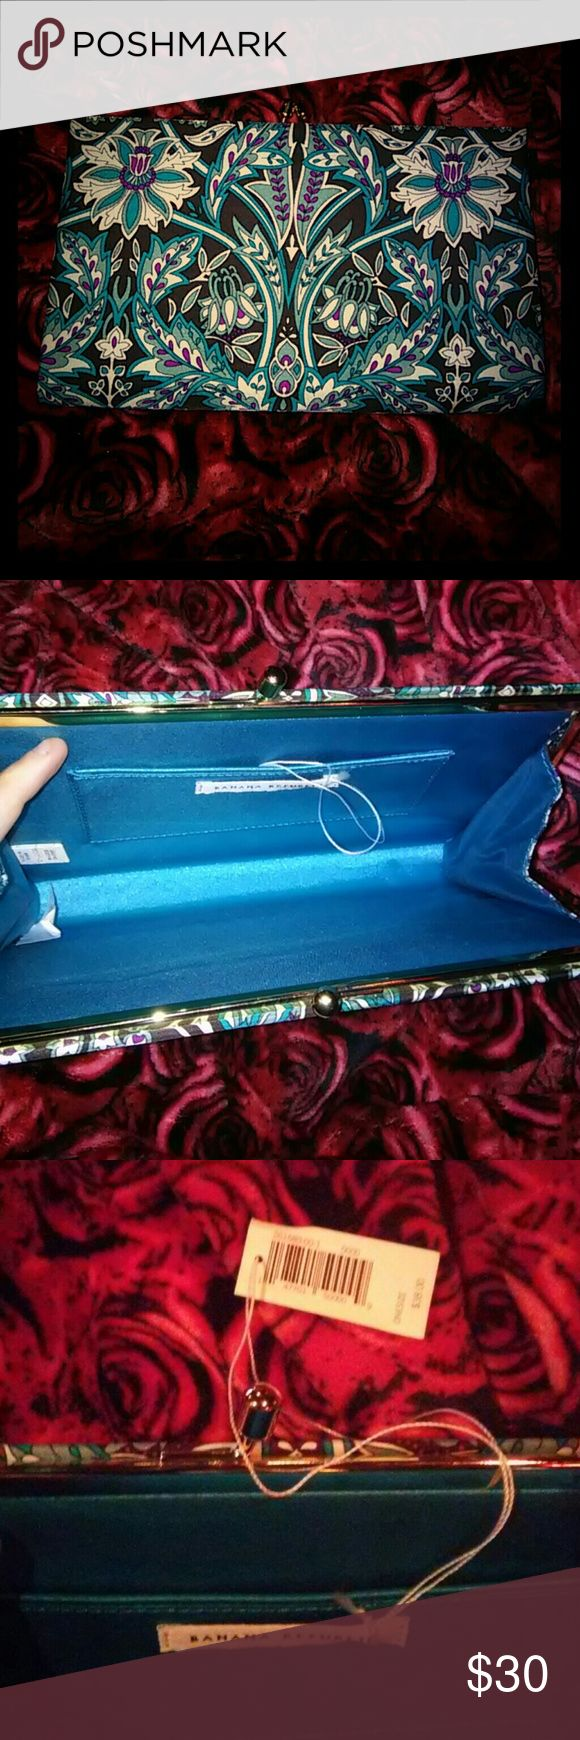 Banana Republic Clutch vintage inspired. This listing is for a NWT clutch from Banana Republic. It has a very vintage feel and has teal, green, purple, white, and black with a coin bag snap closure on top.  The inside is a silk teal and the whole bag feels silky. It has never been used and has the tags and orignal paper still in it.  Any questions please ask!  I am new to this and don't know how to bundle but contact me and I can always make you a listing and make me an offer.  Thanks :) xo…